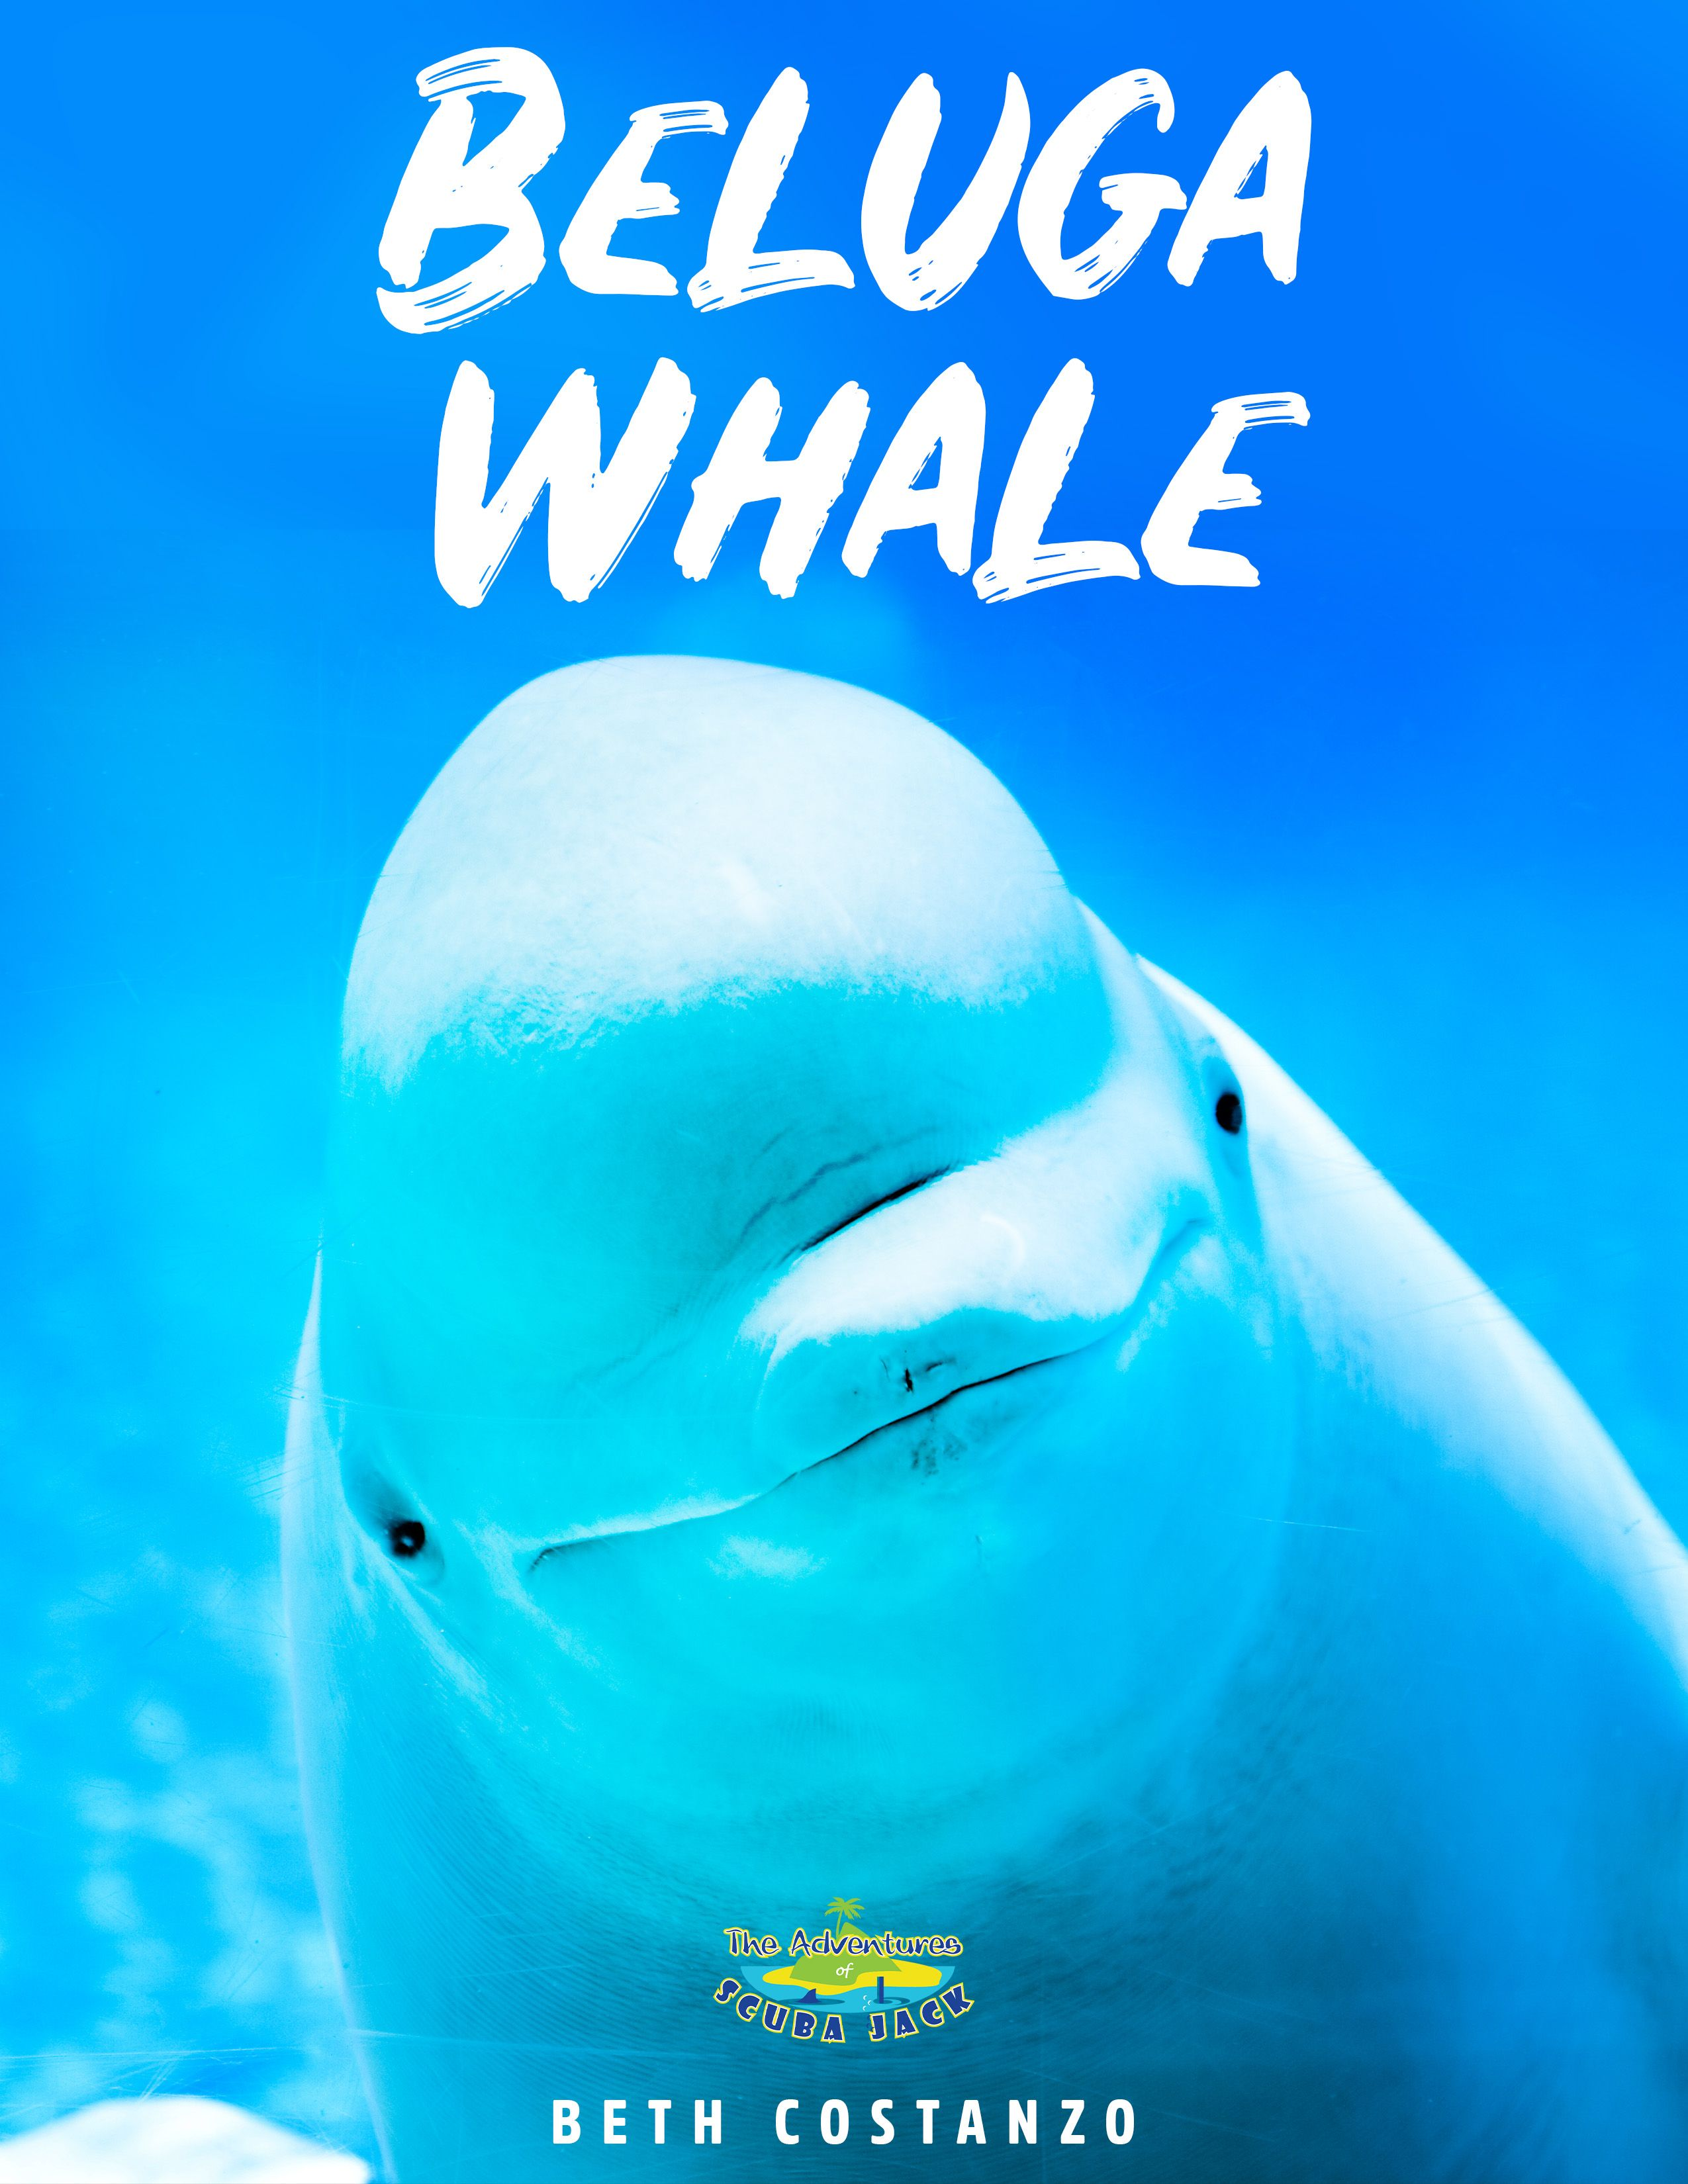 Beluga Whales Booklet For Kids In